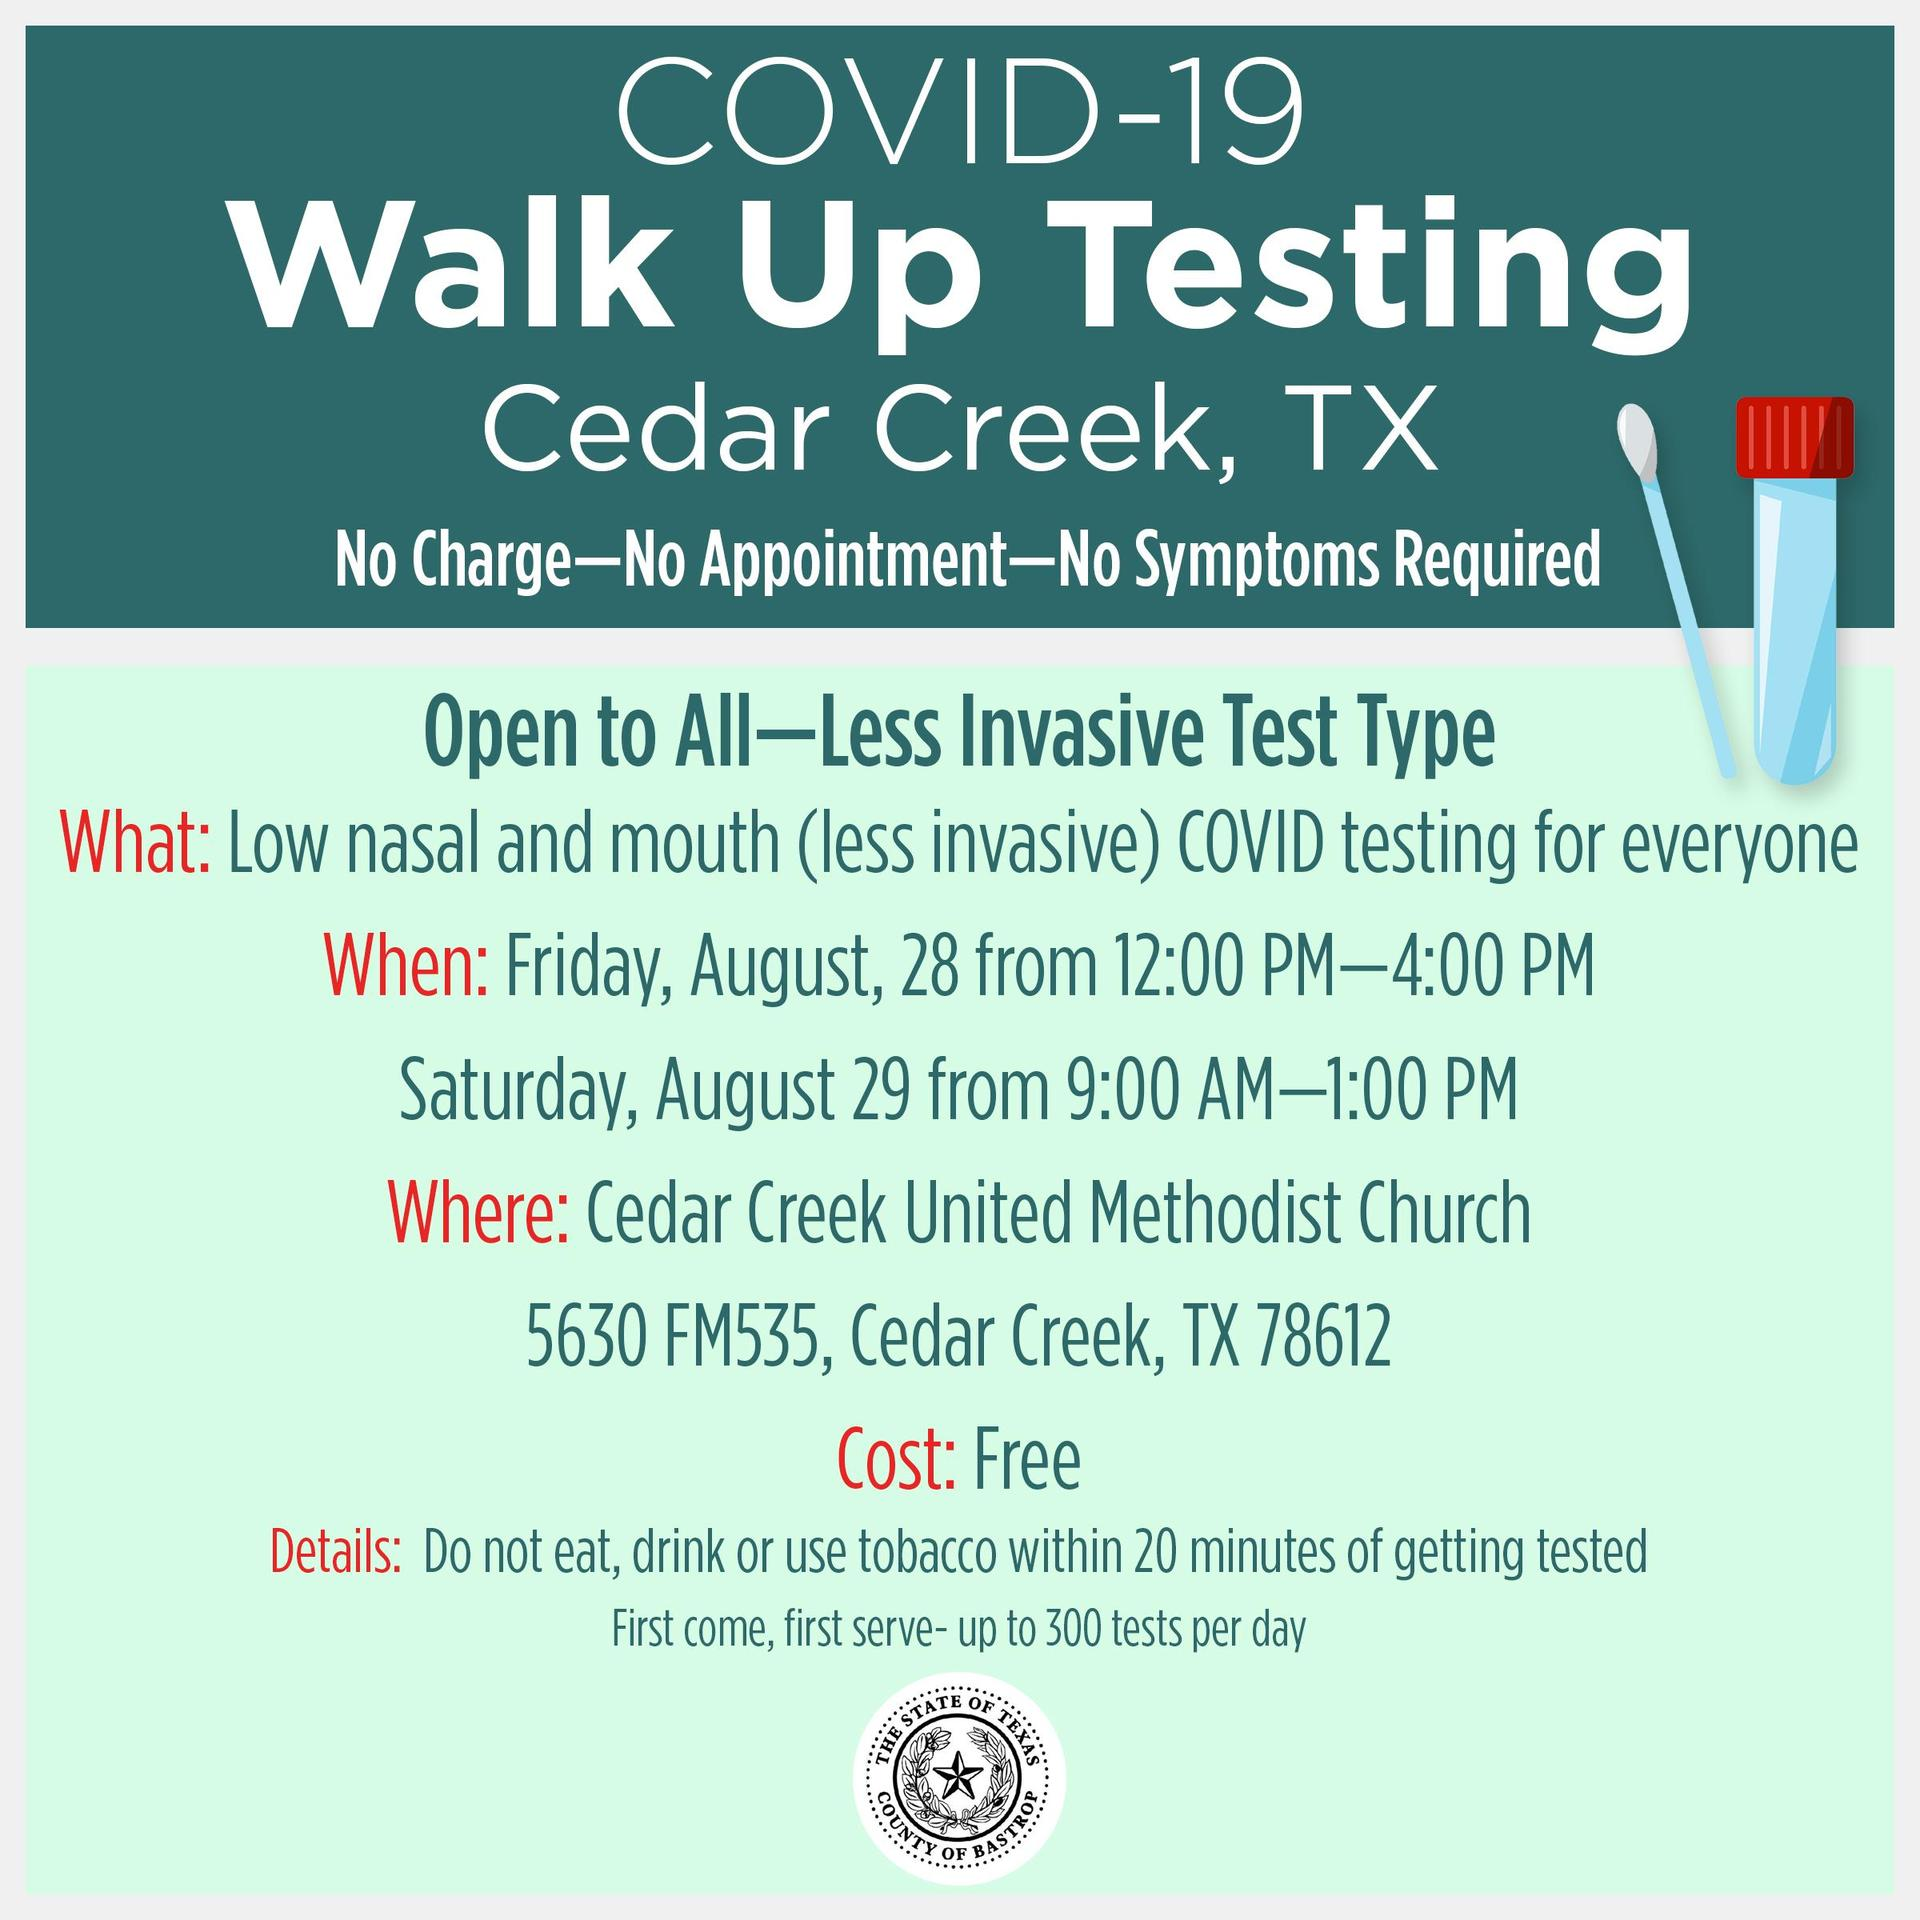 Walk-up Testing for COVID-19